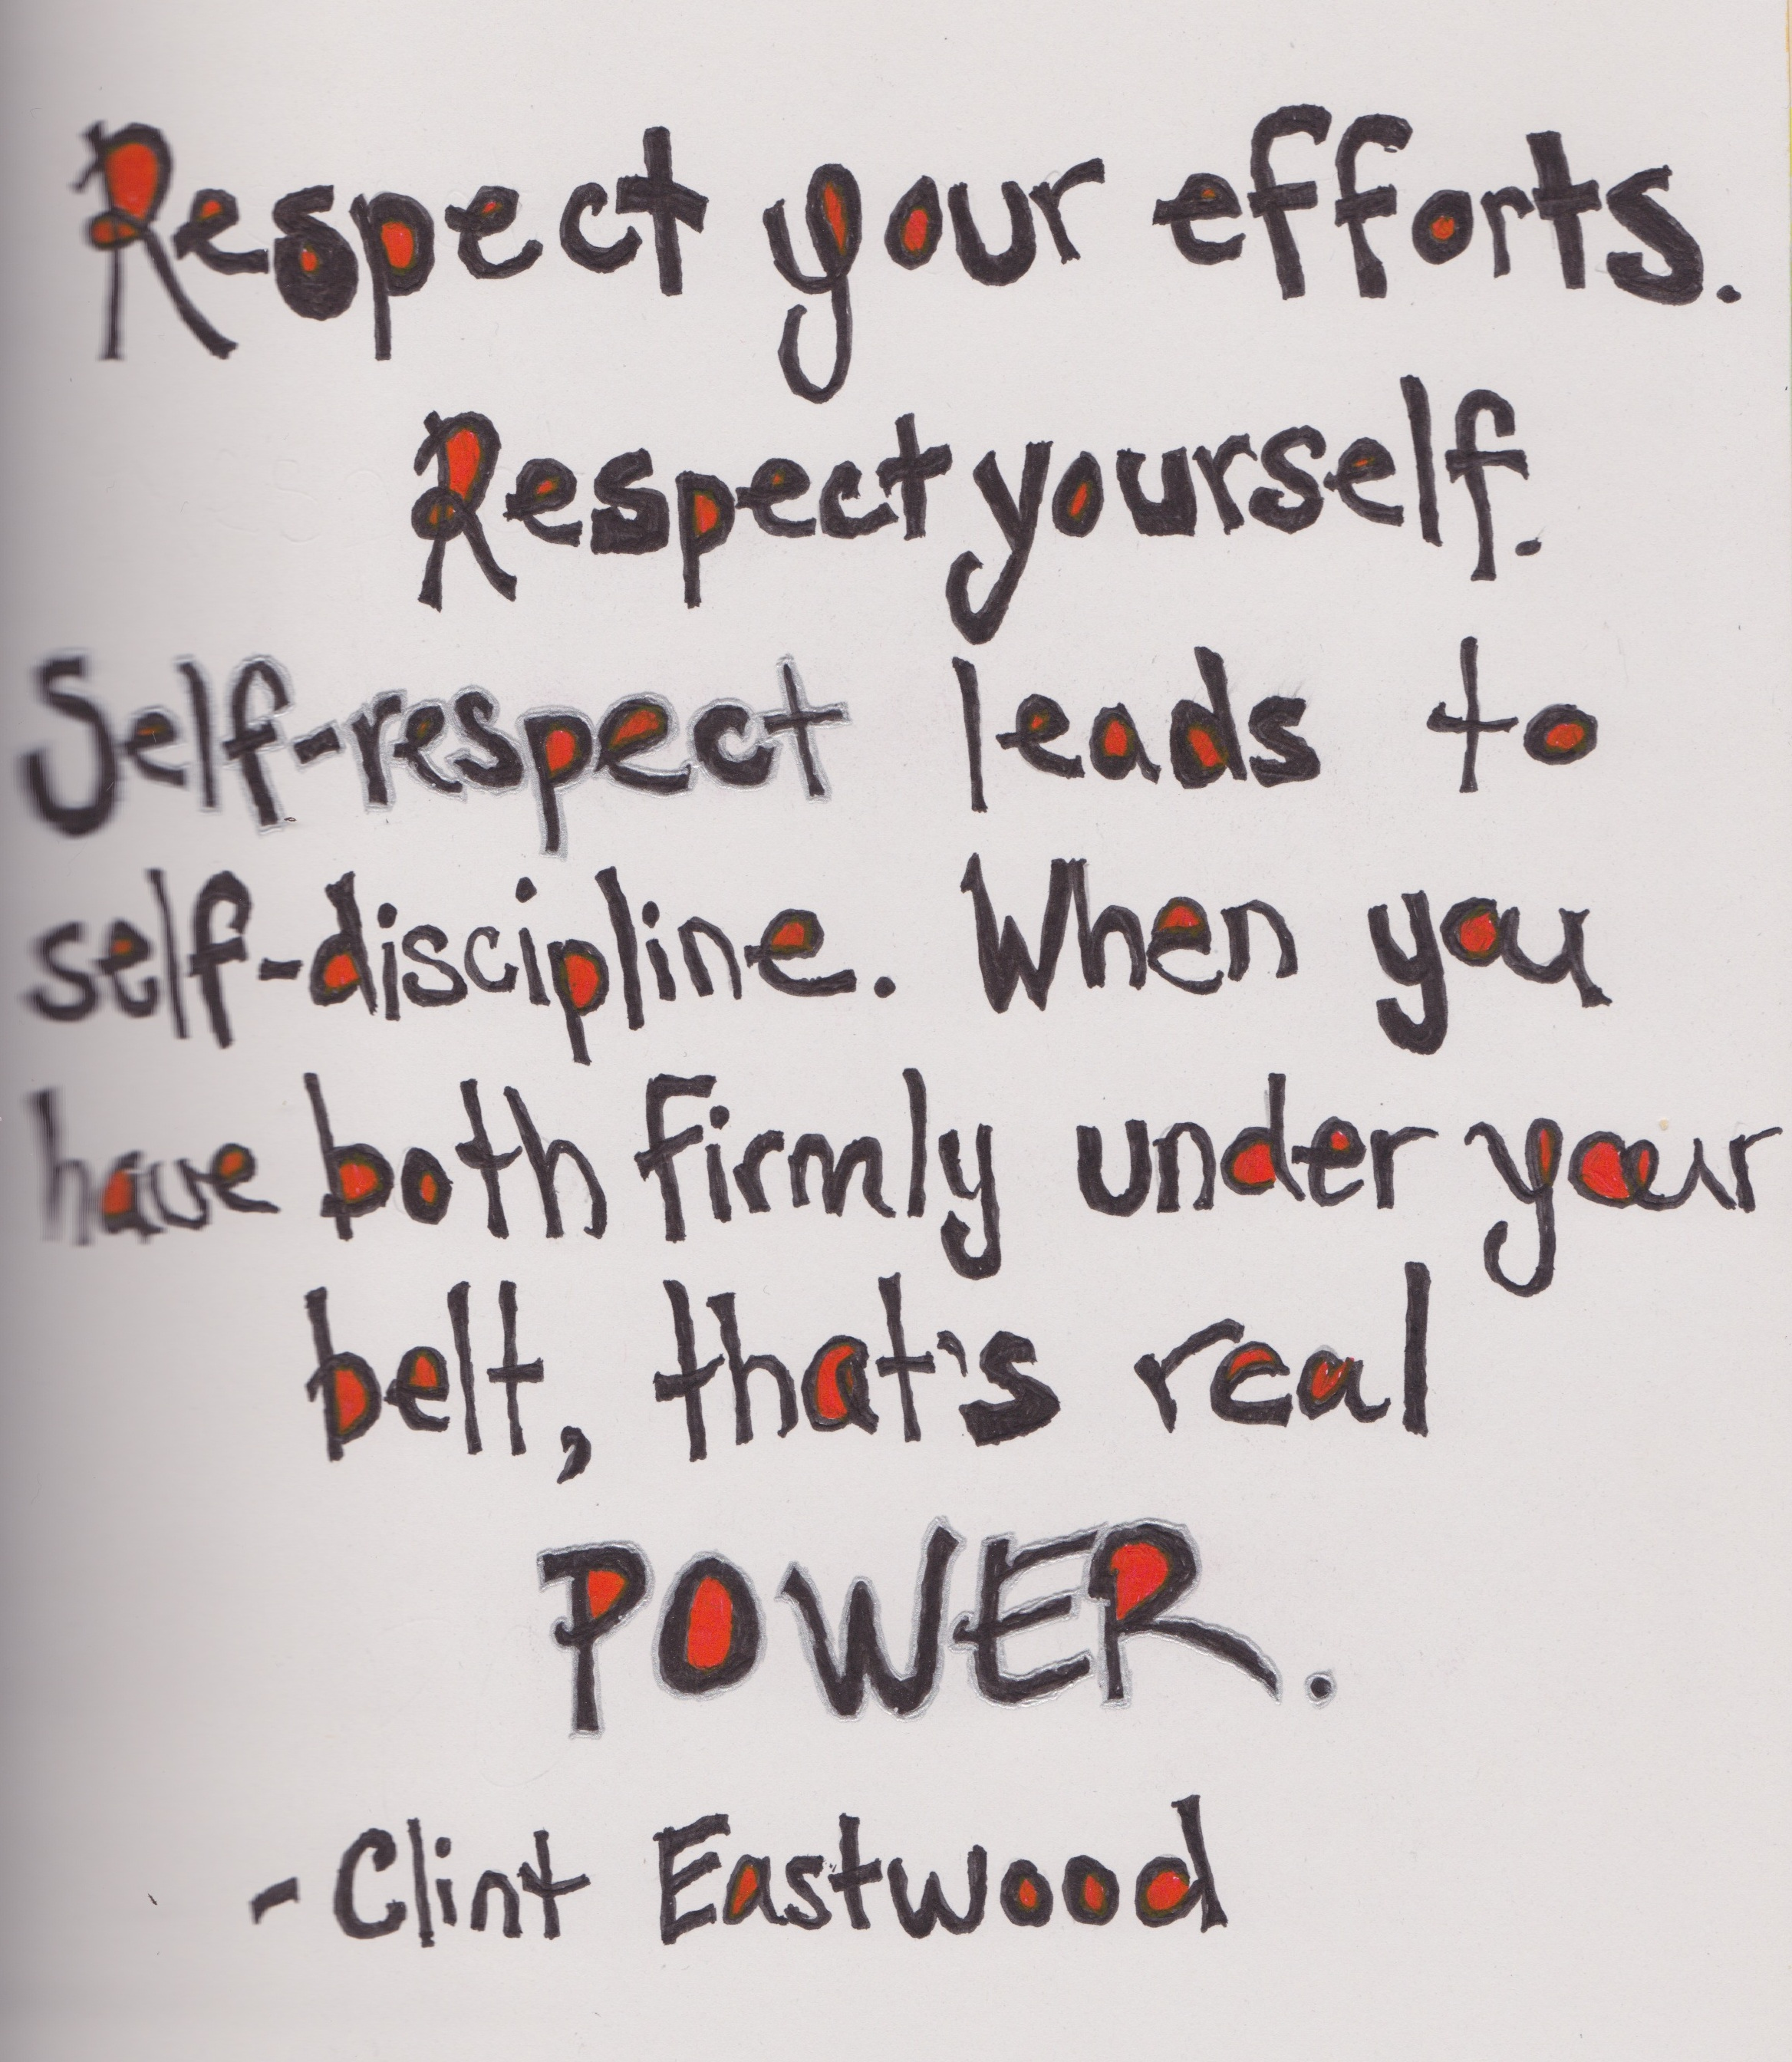 Respect Your Efforts Respect Youself Self Discipline Self Respect